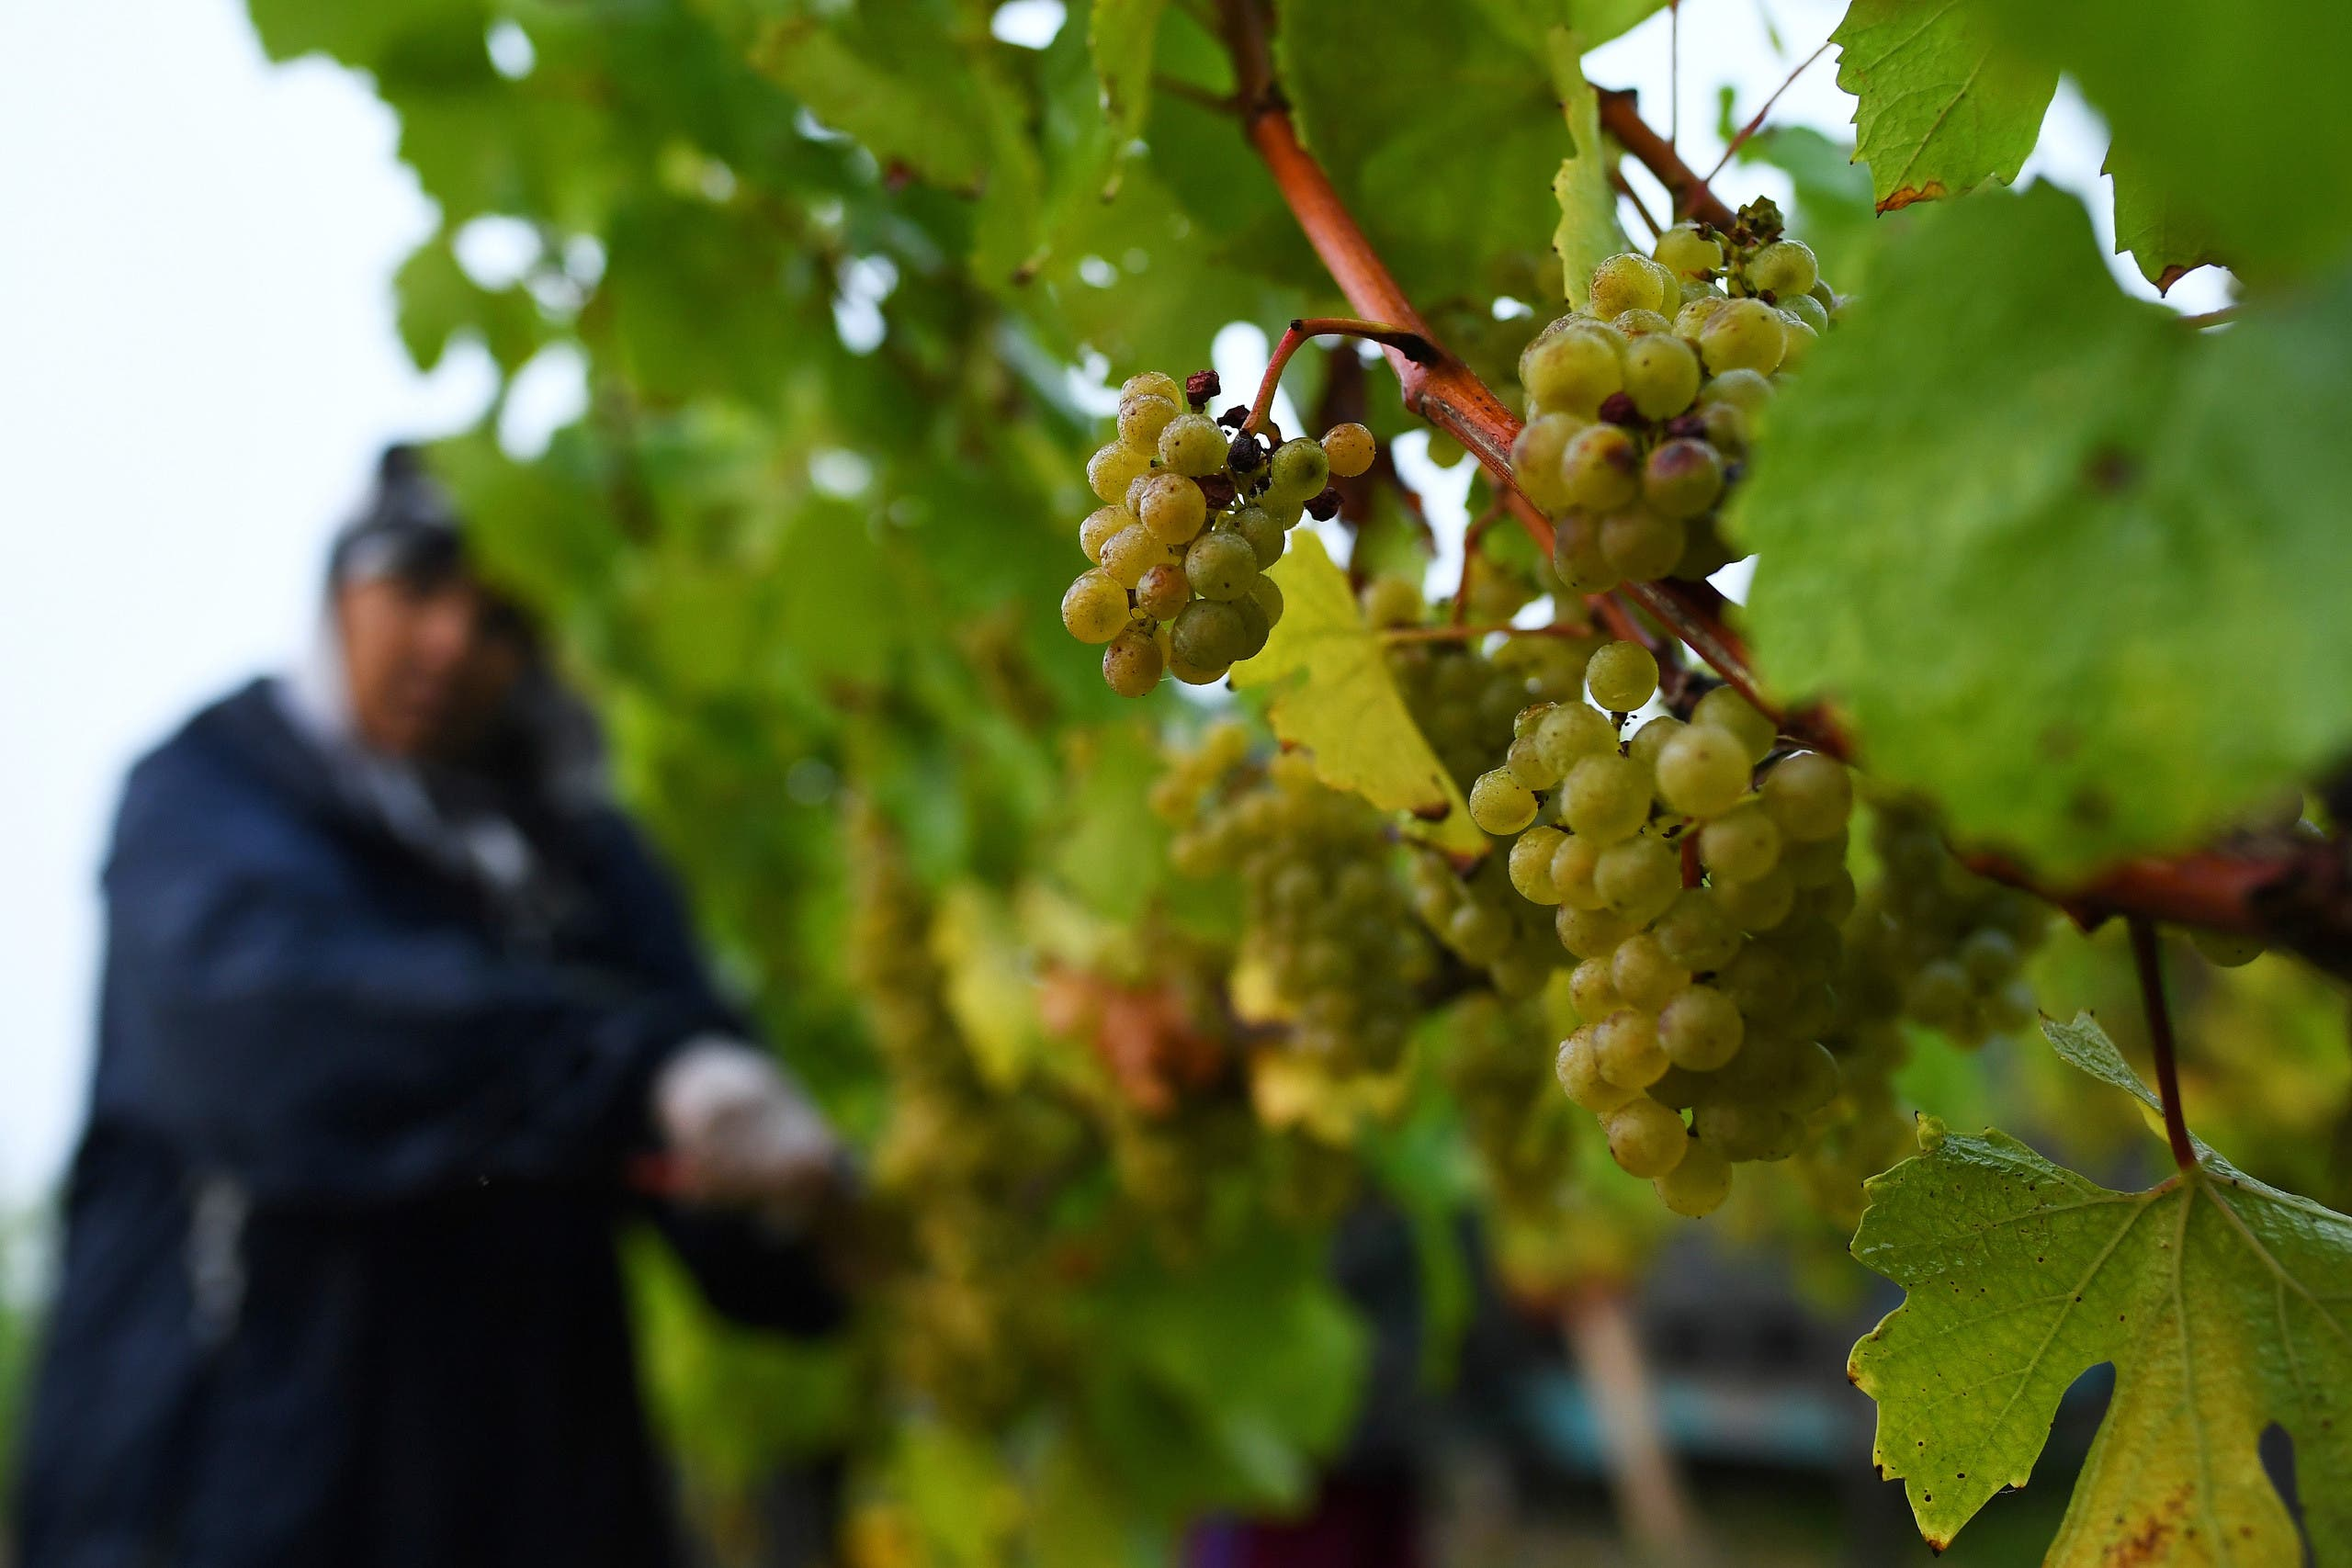 Migrant workers pick grapes at a vineyard in Aylesford, Kent, Britain, October 5, 2018. (Reuters)